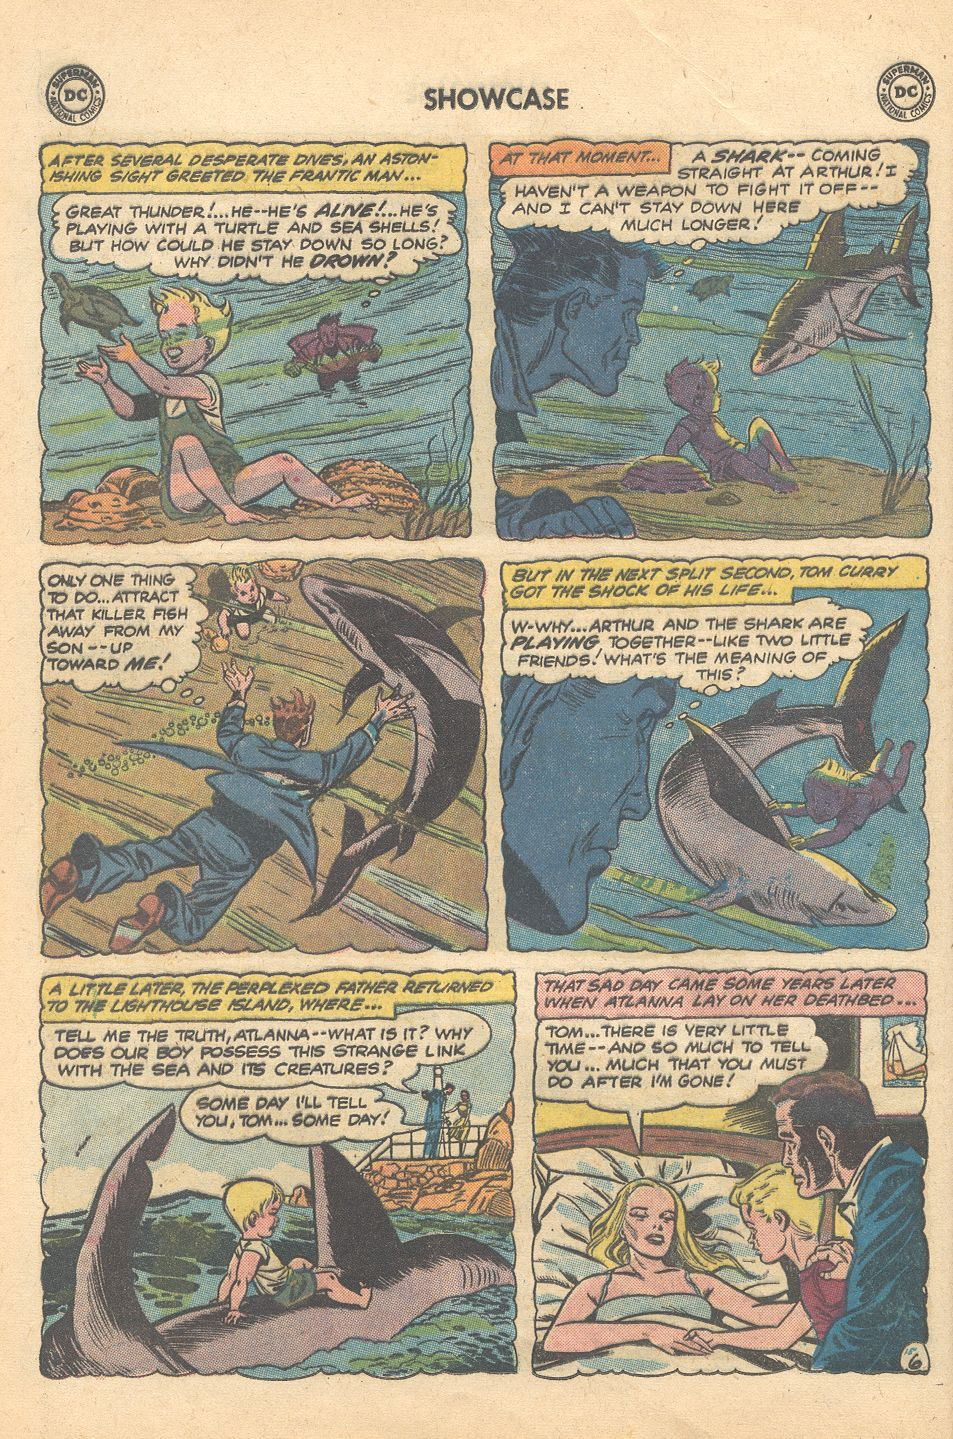 Showcase (1956) #30 pg6, art by Ramona Fradon.